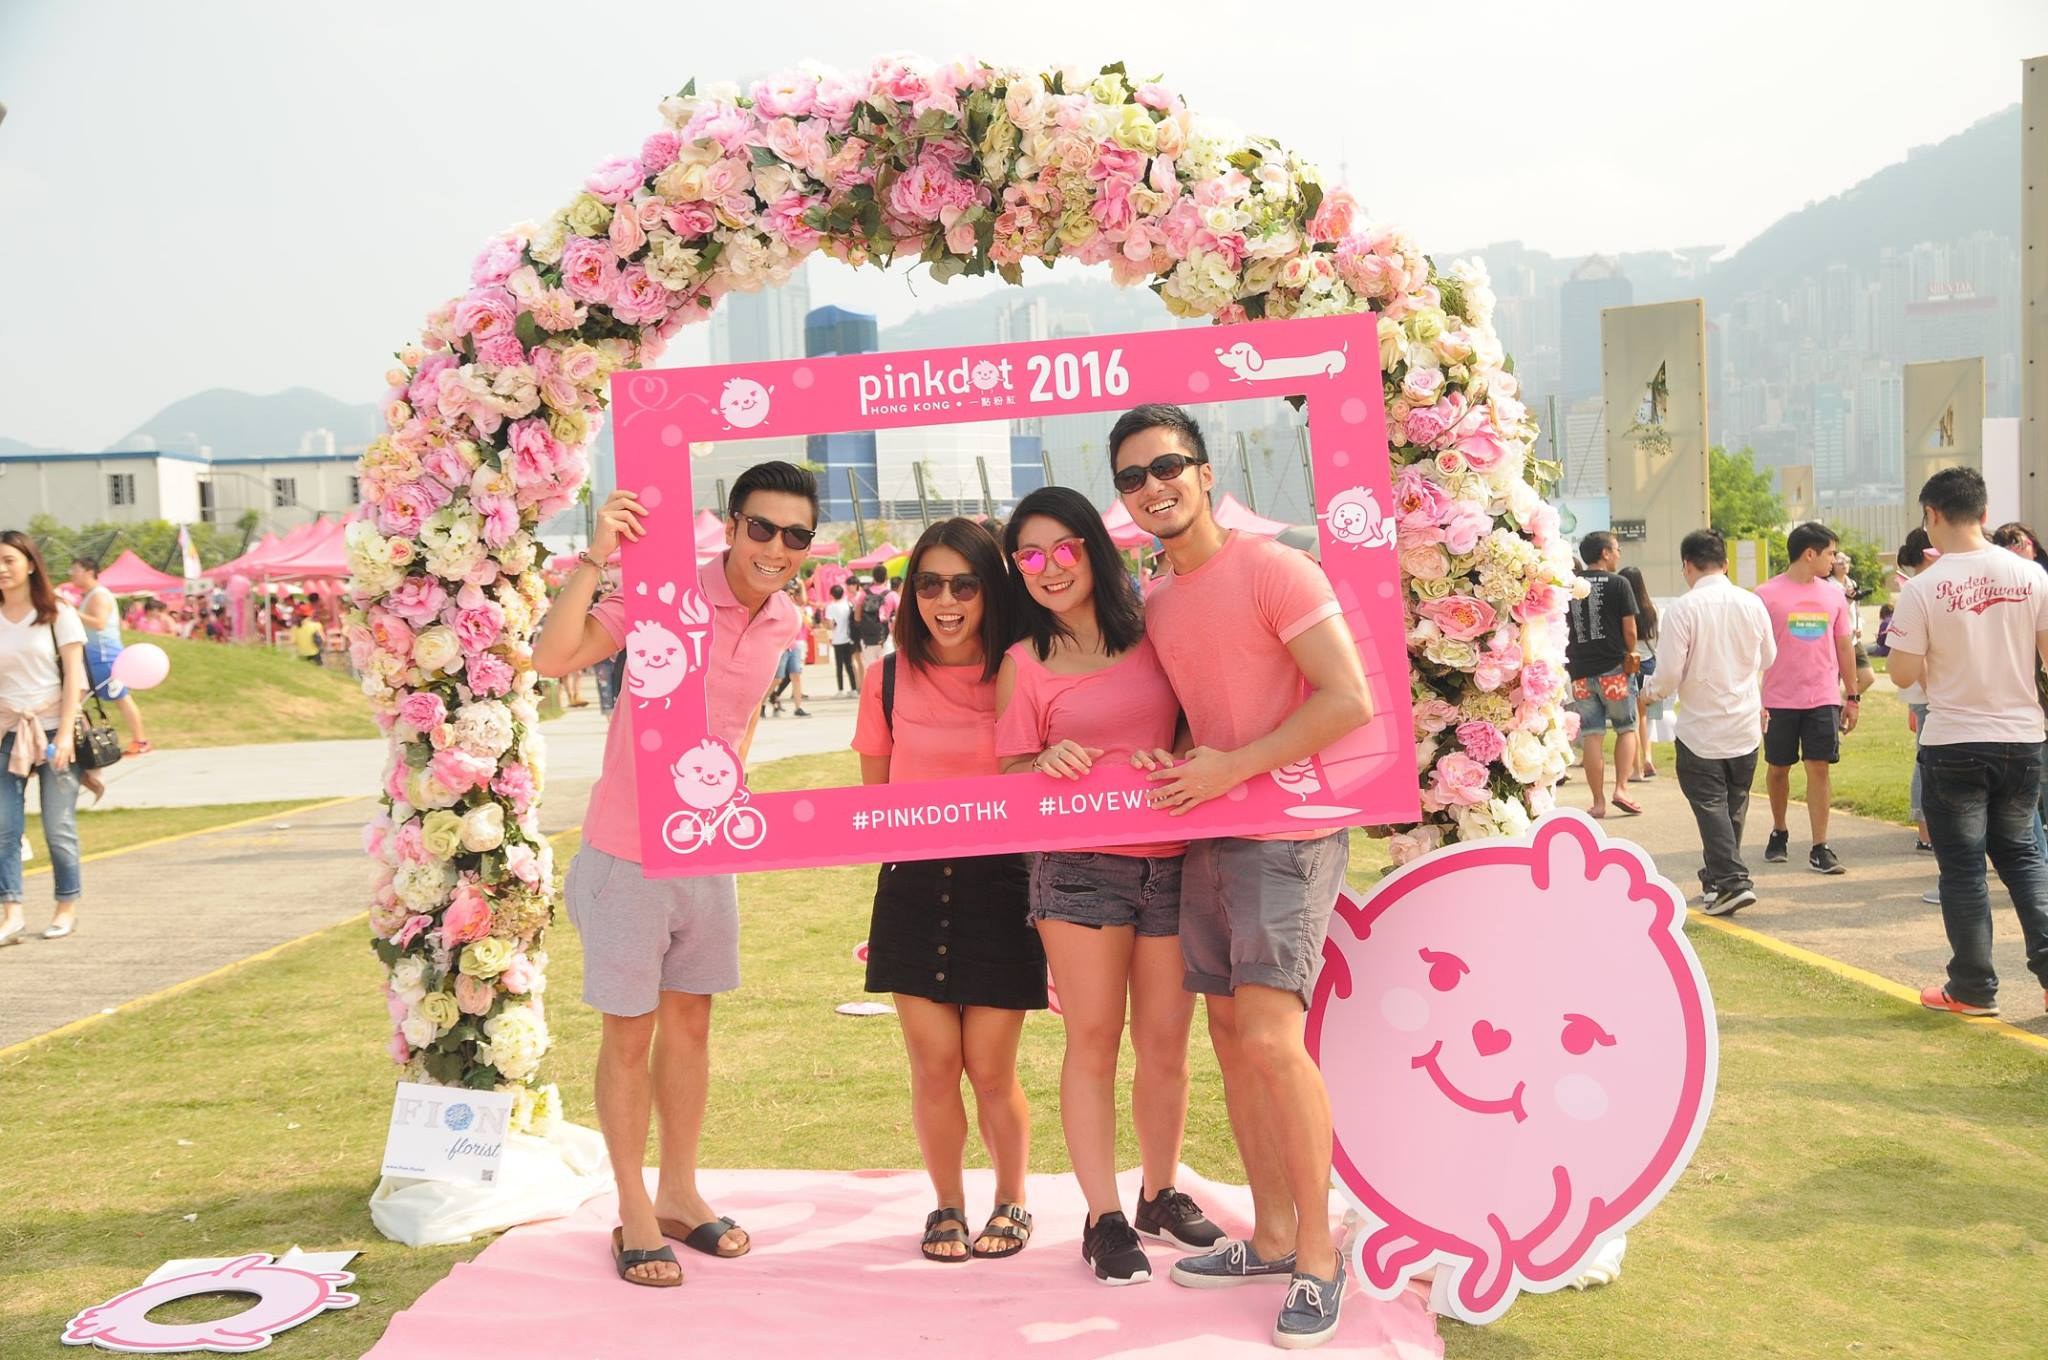 People at Pink Dot Hong Kong in 2016. Photo Credit: Pink Dot Hong Kong